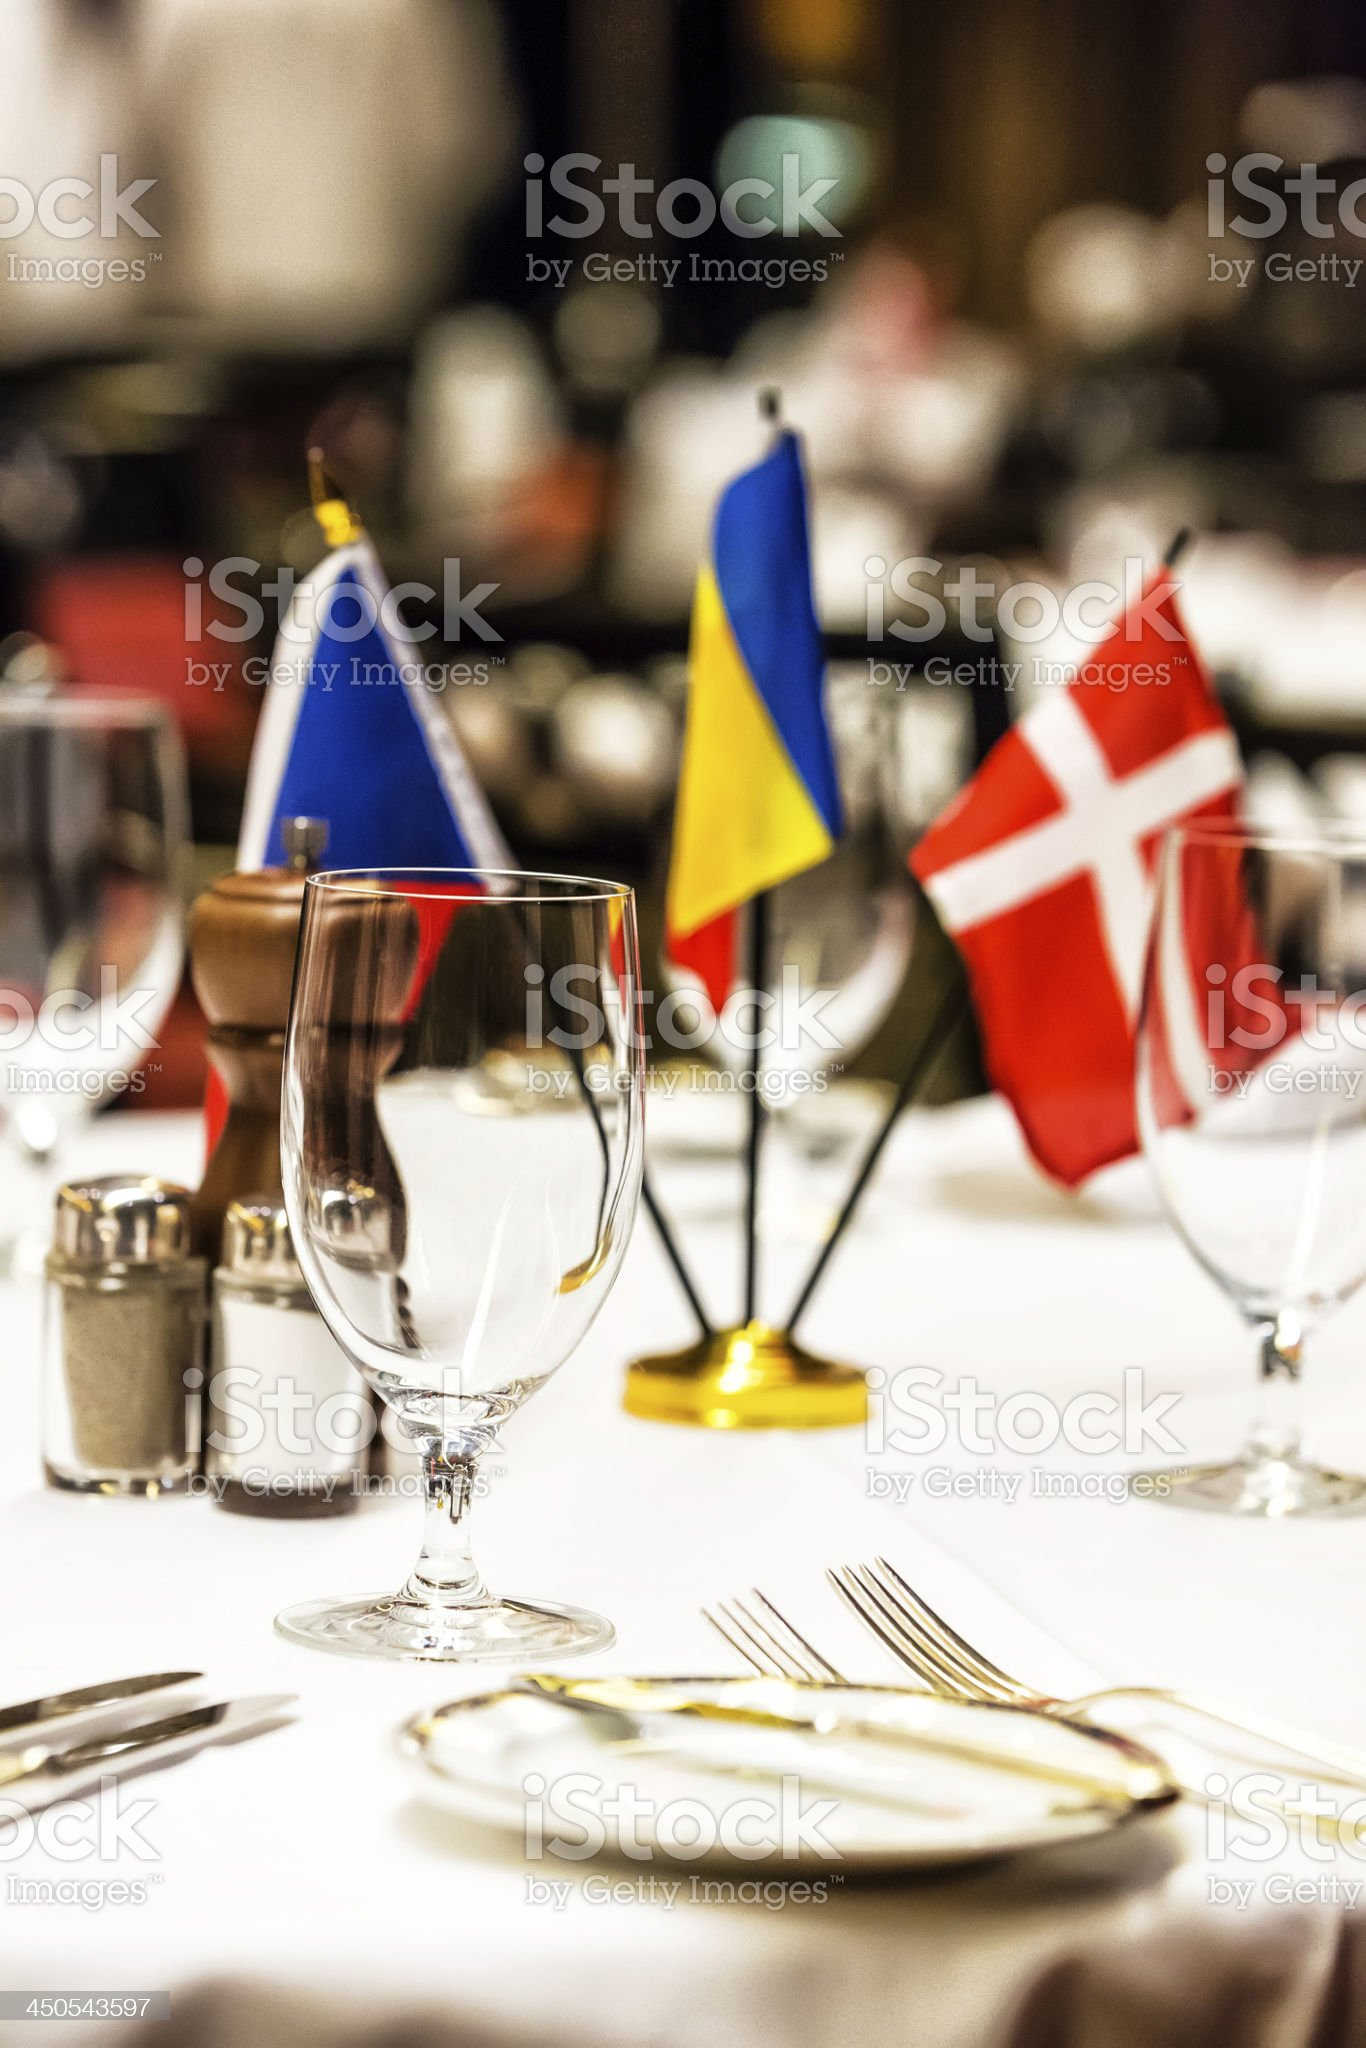 Dining table set with multi national flag centerpiece royalty-free stock photo